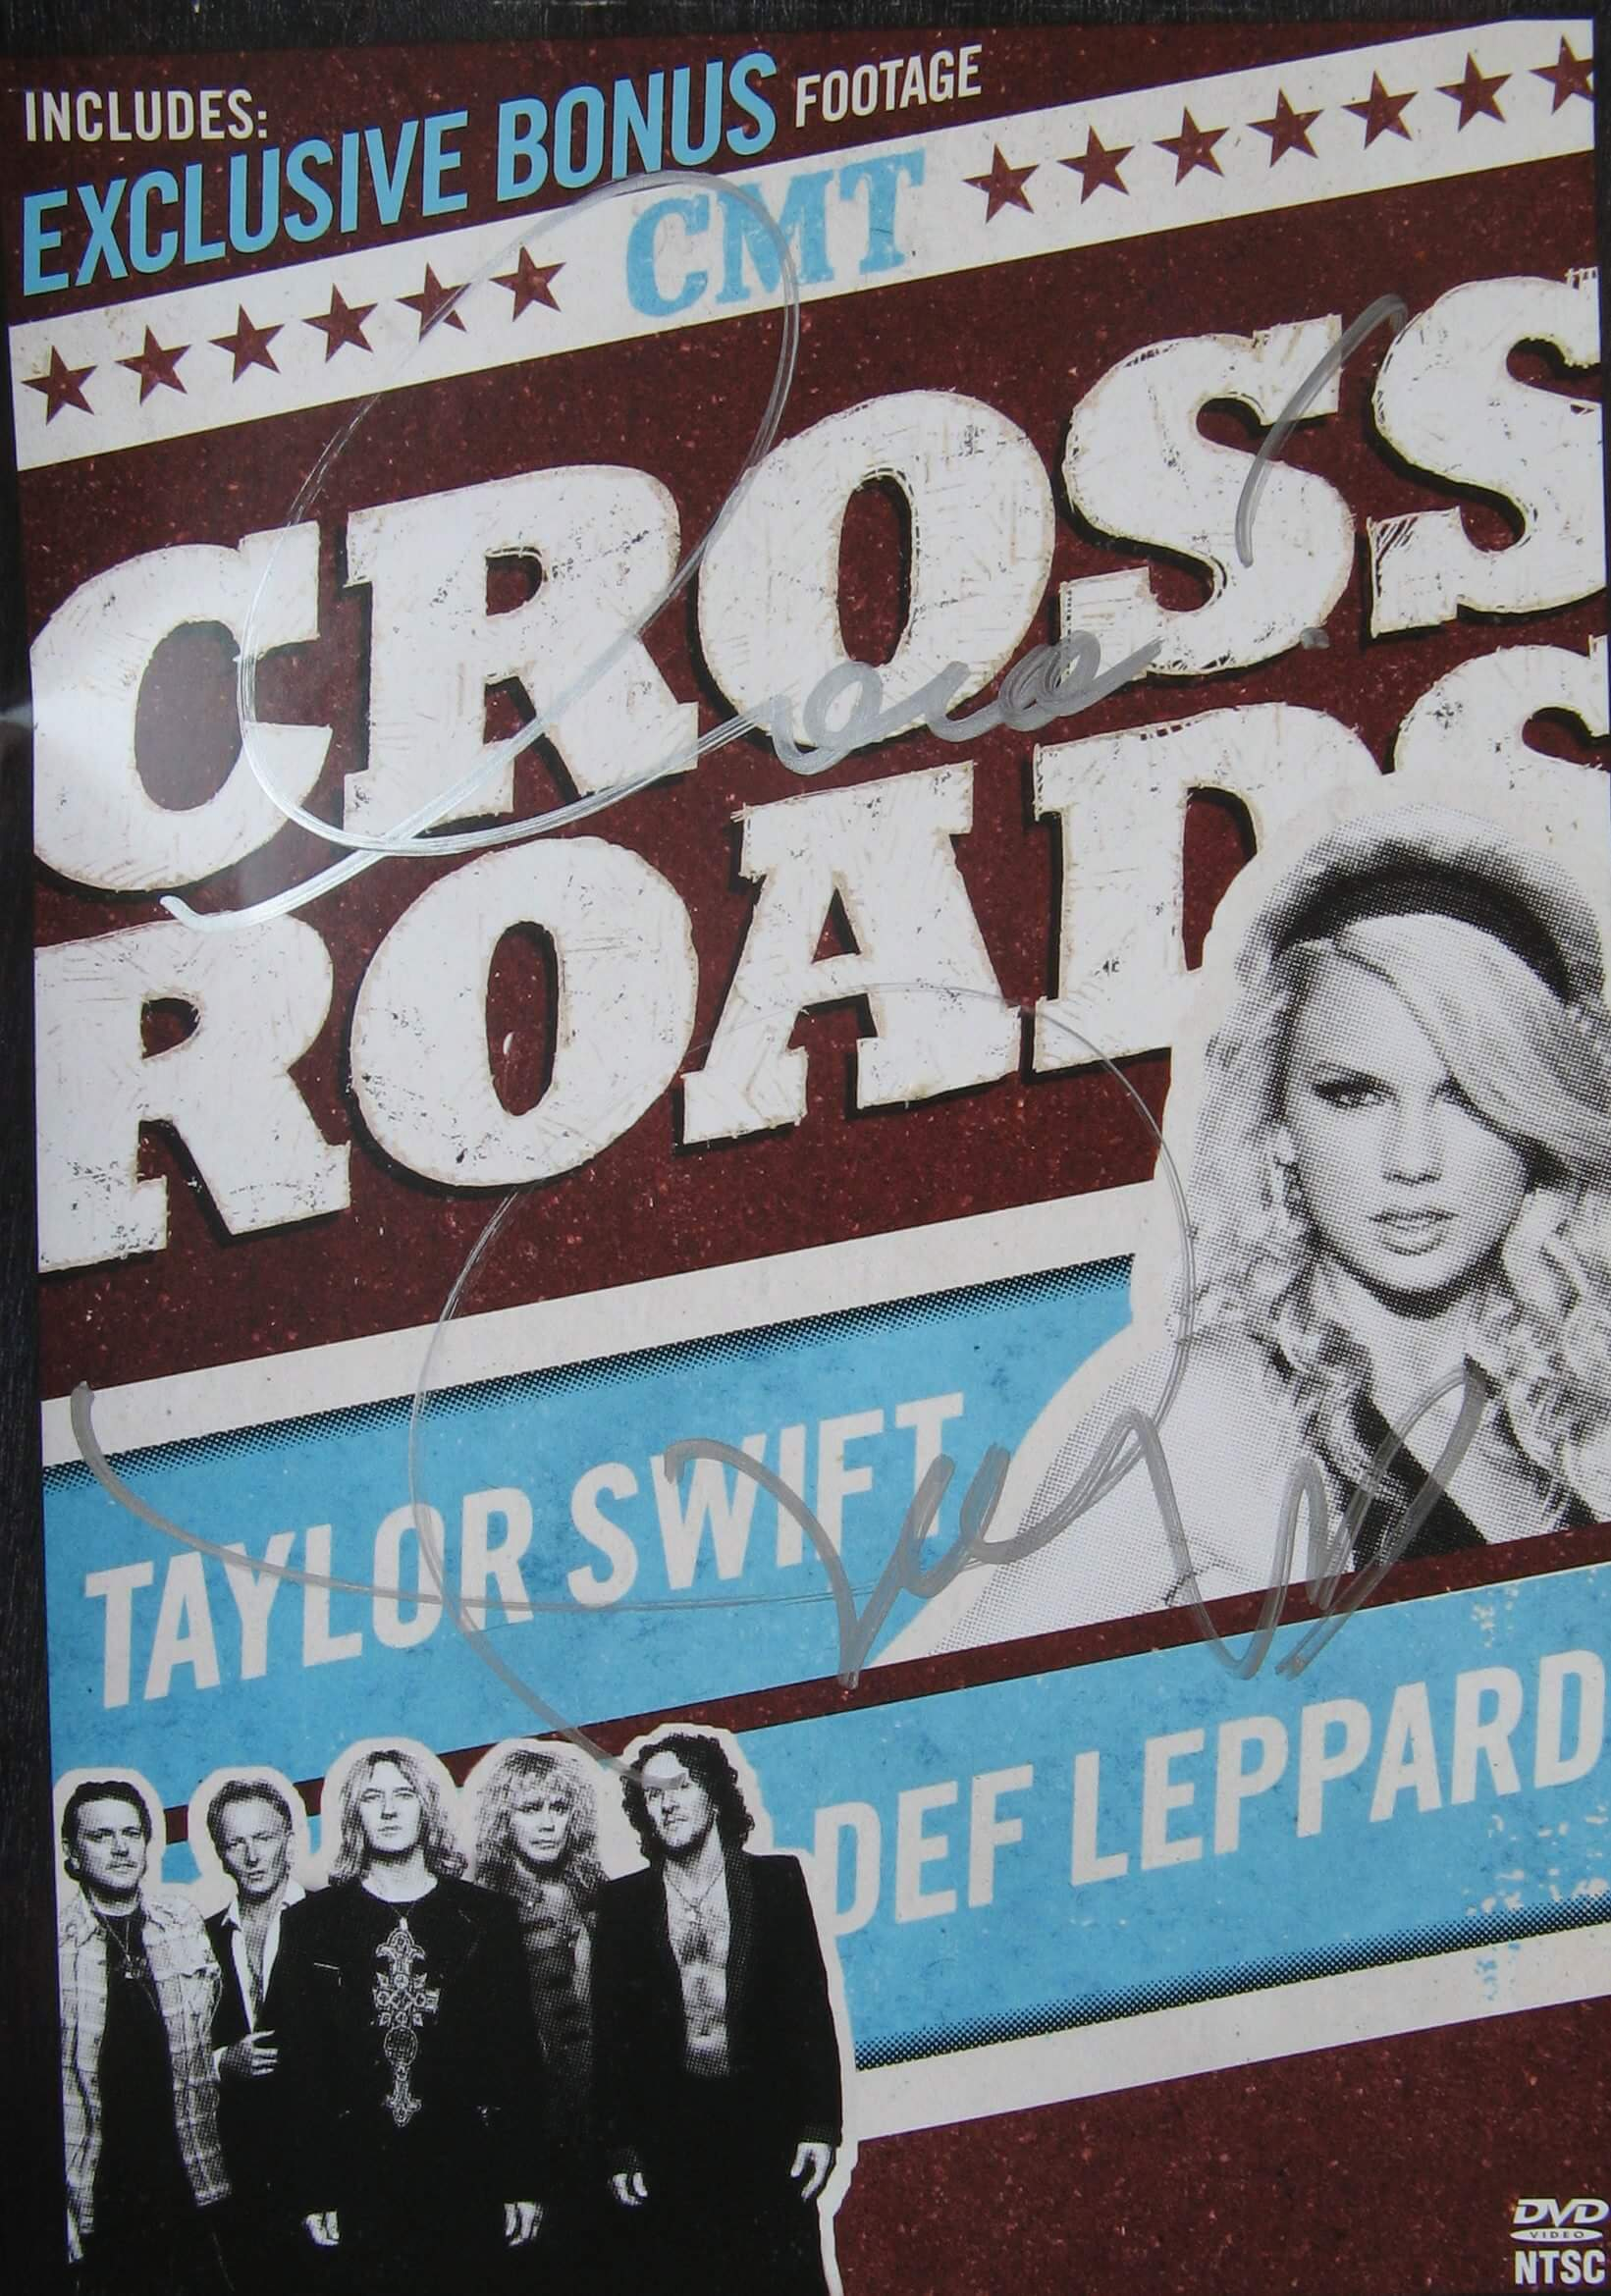 Taylor Swift Hand Signed Crossroads Dvd Presley Collectibles